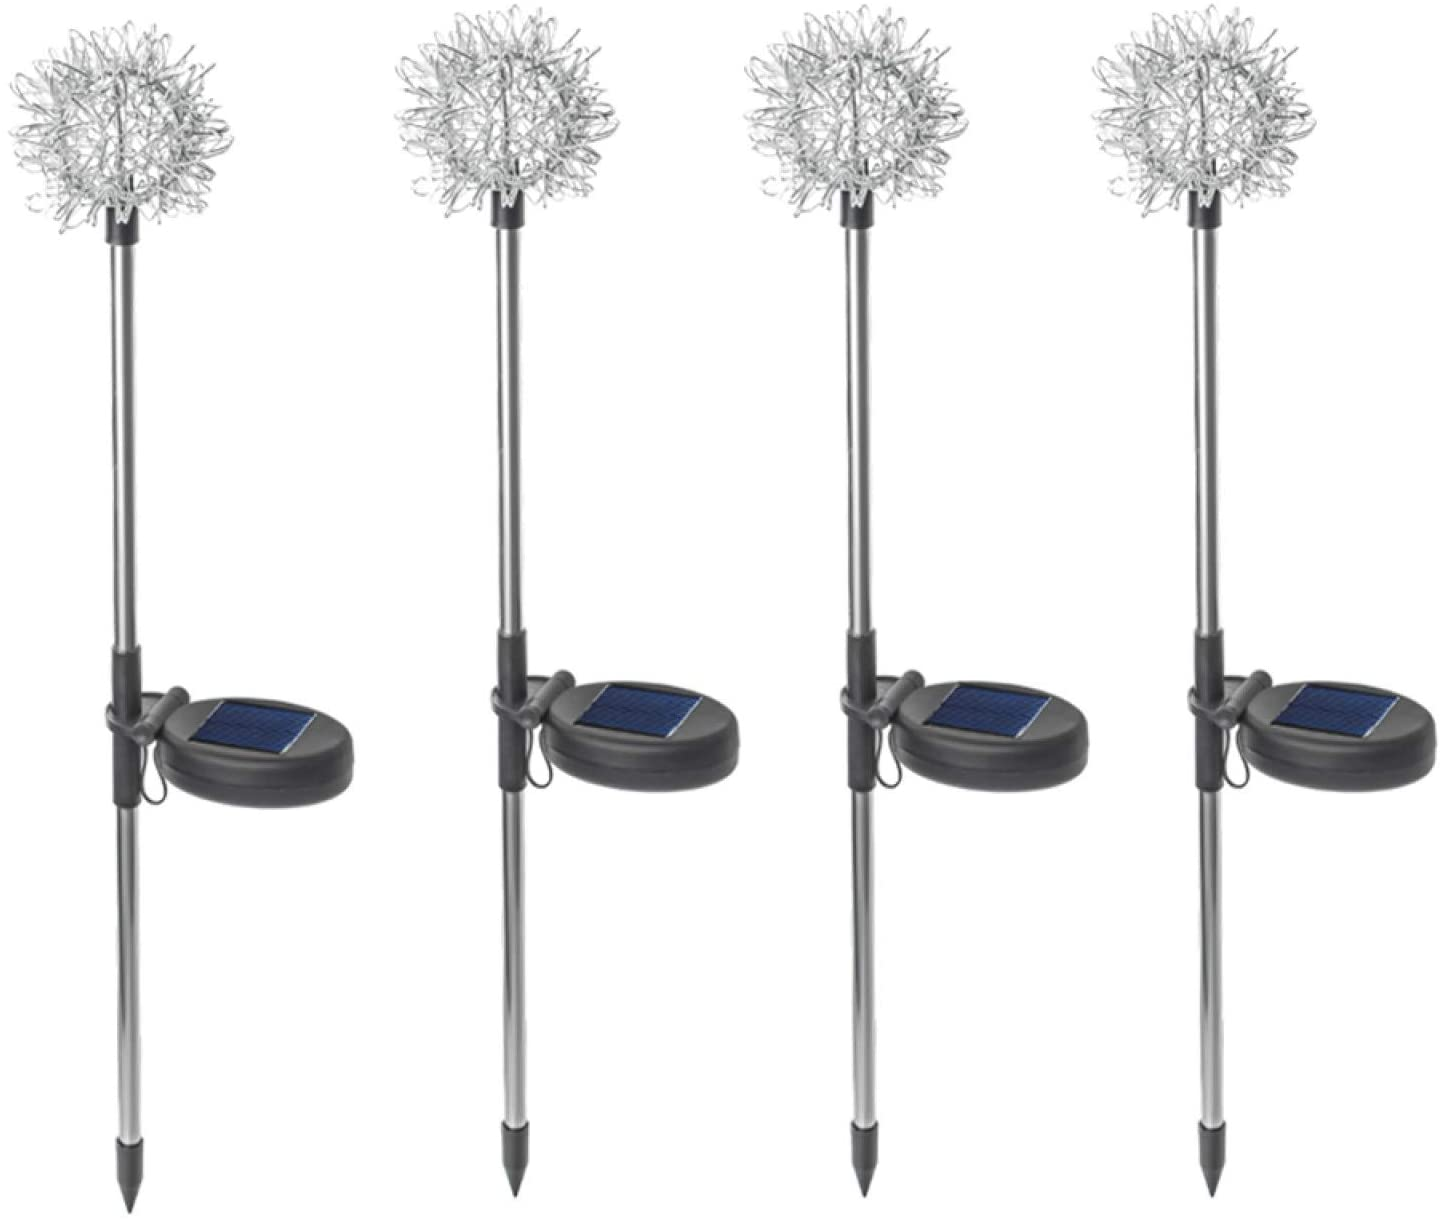 Dandelion Lamp,4Pcs Solar Powered LED Stake Light,Outdoor Lamps for Lawn Garden Wedding Party - Colorful Light